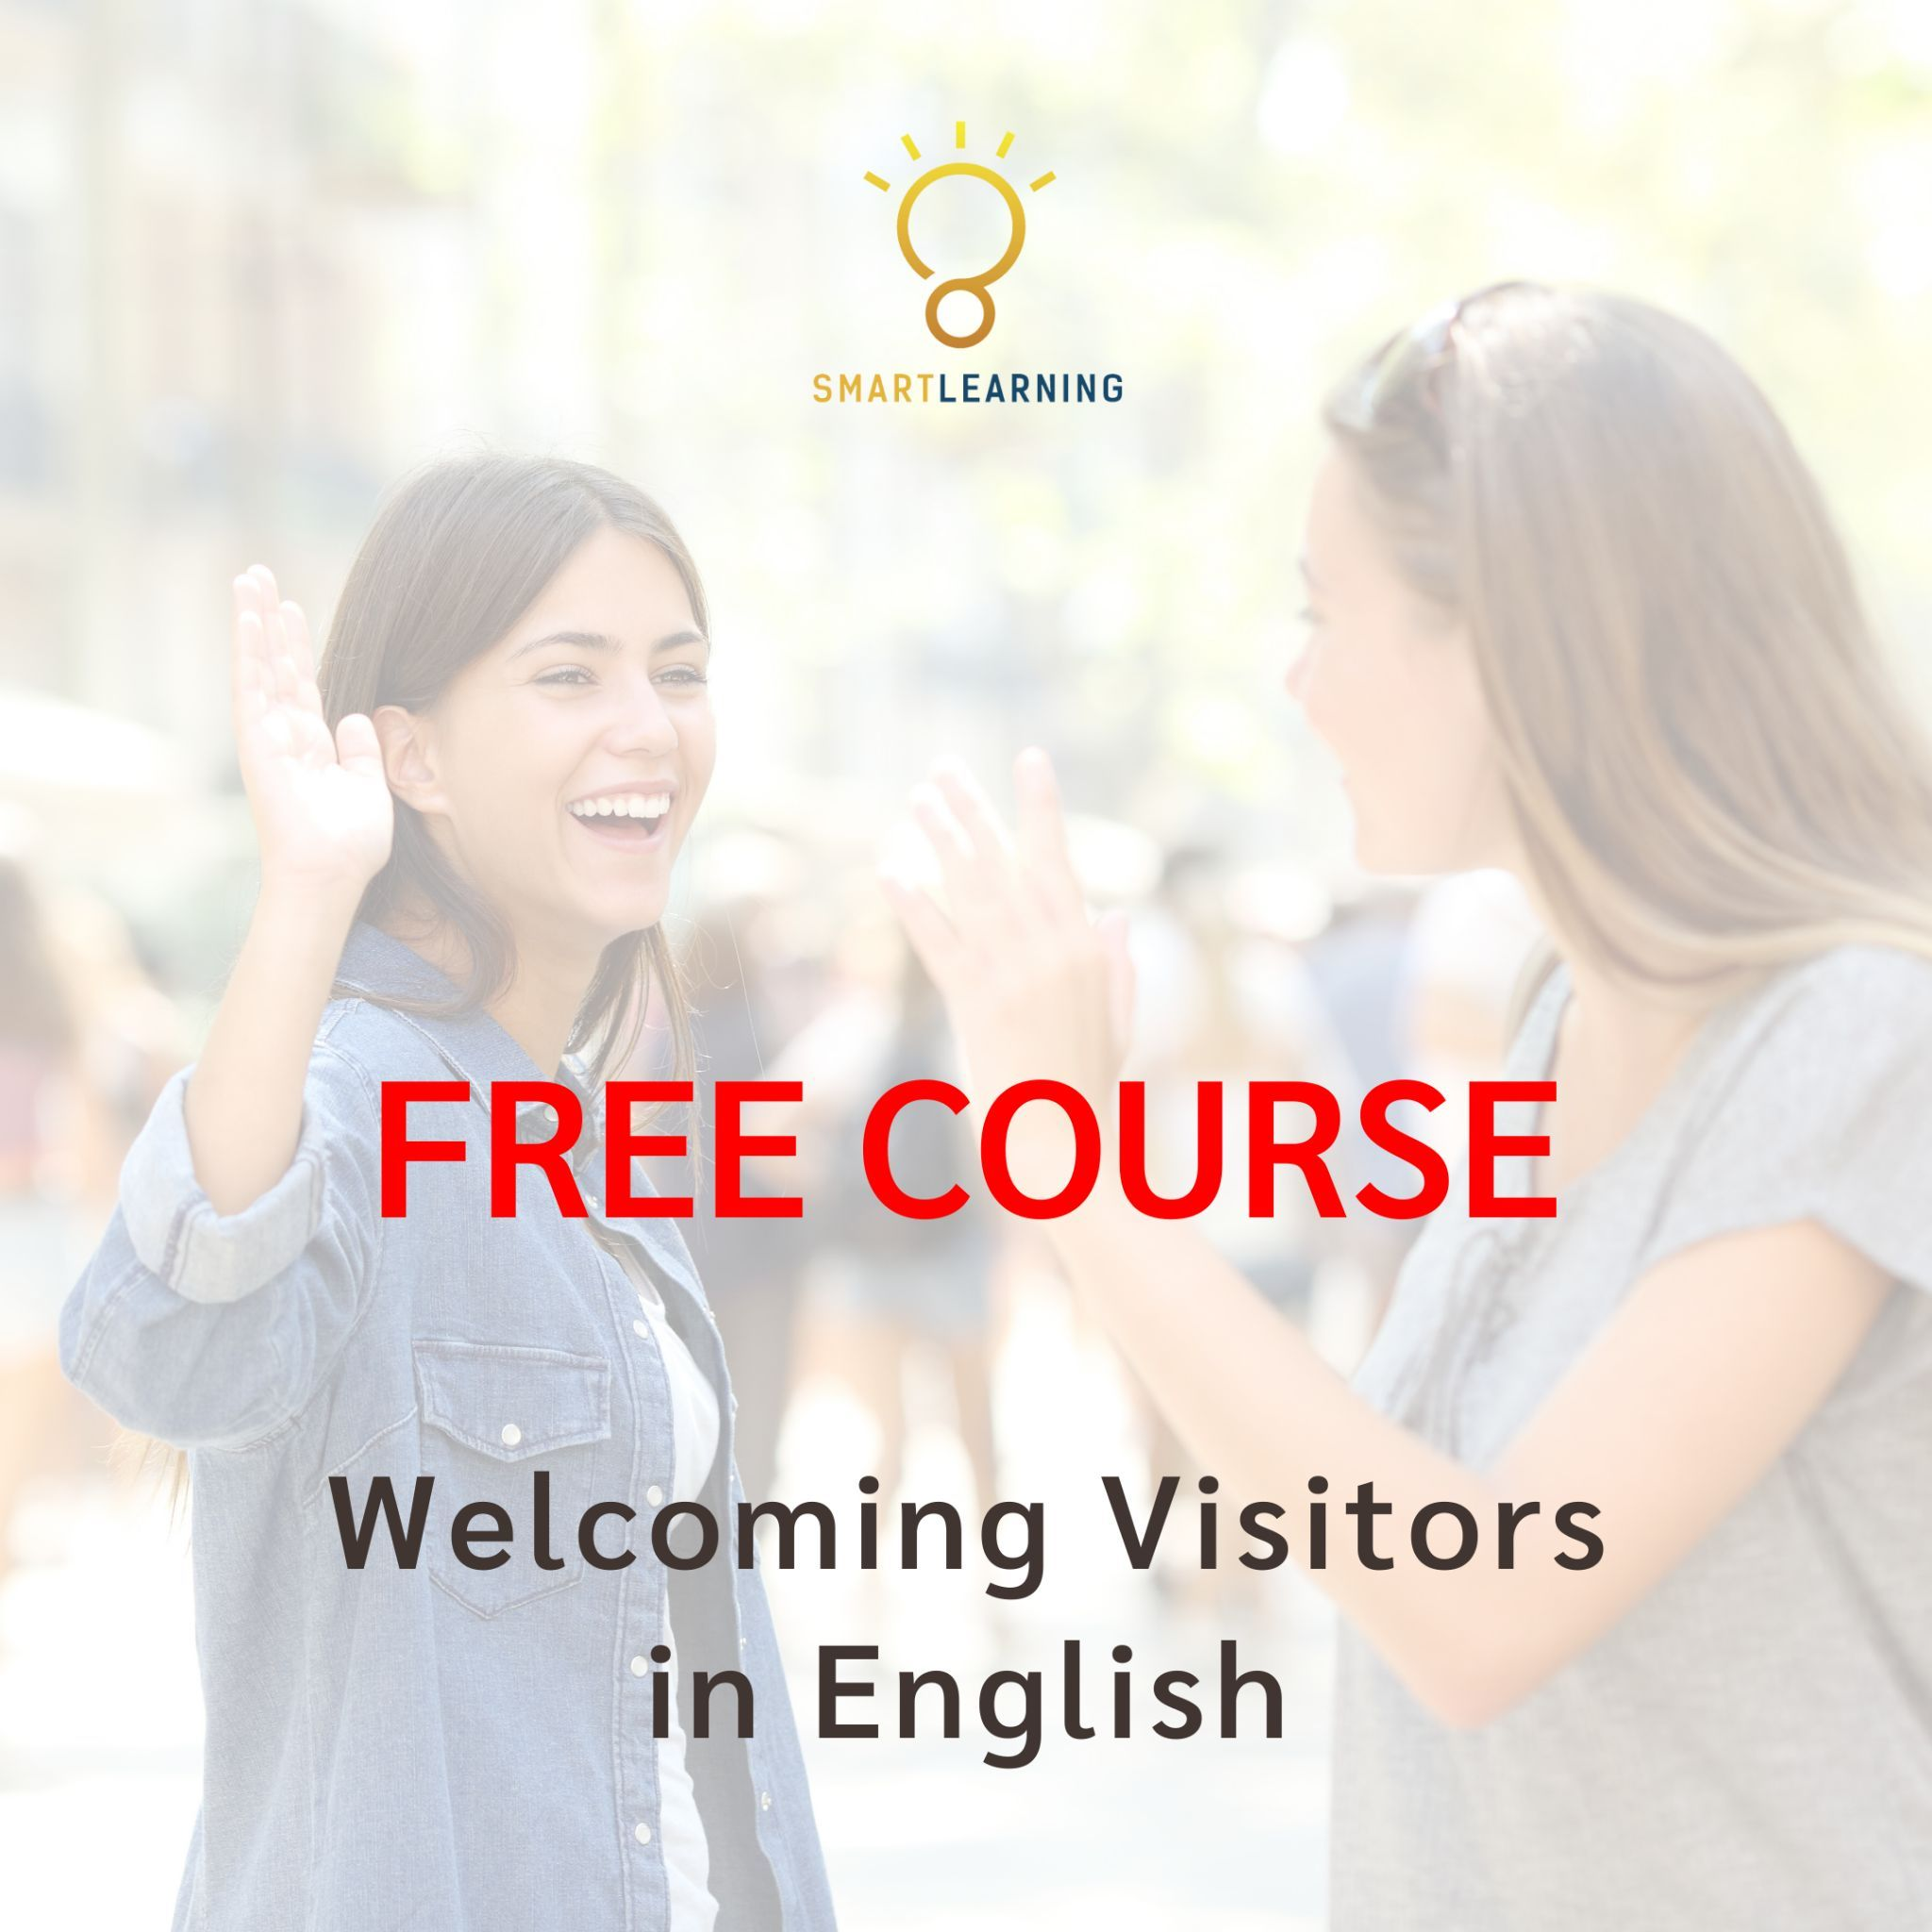 (Free Course) Welcoming Visitors in English